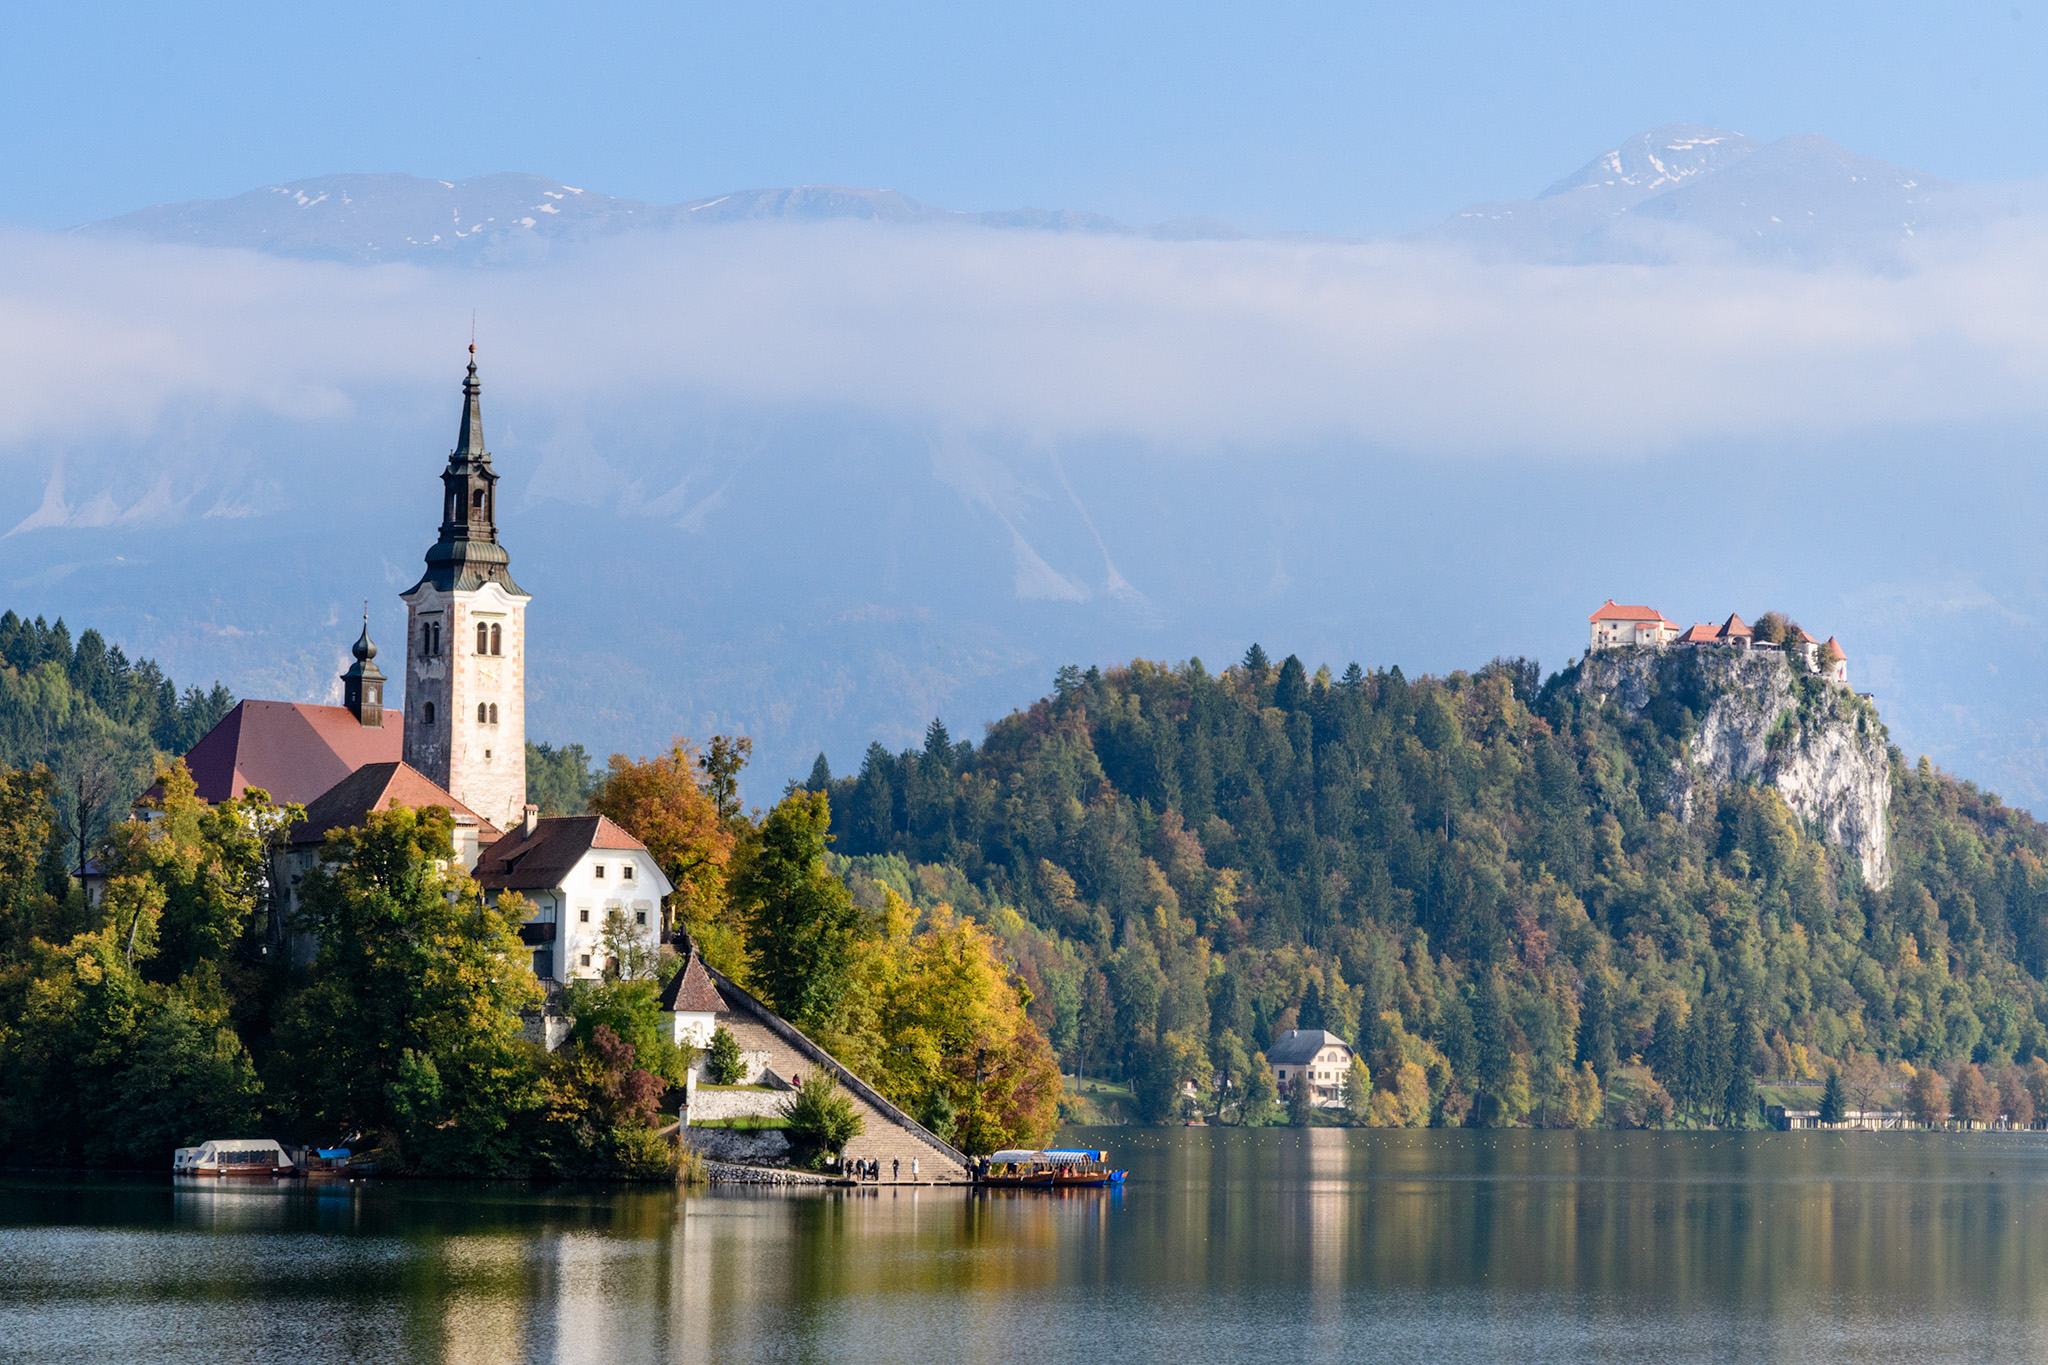 The Bled Castle looms in the distance, while equally scenic private villas line the shores of Lake Bled